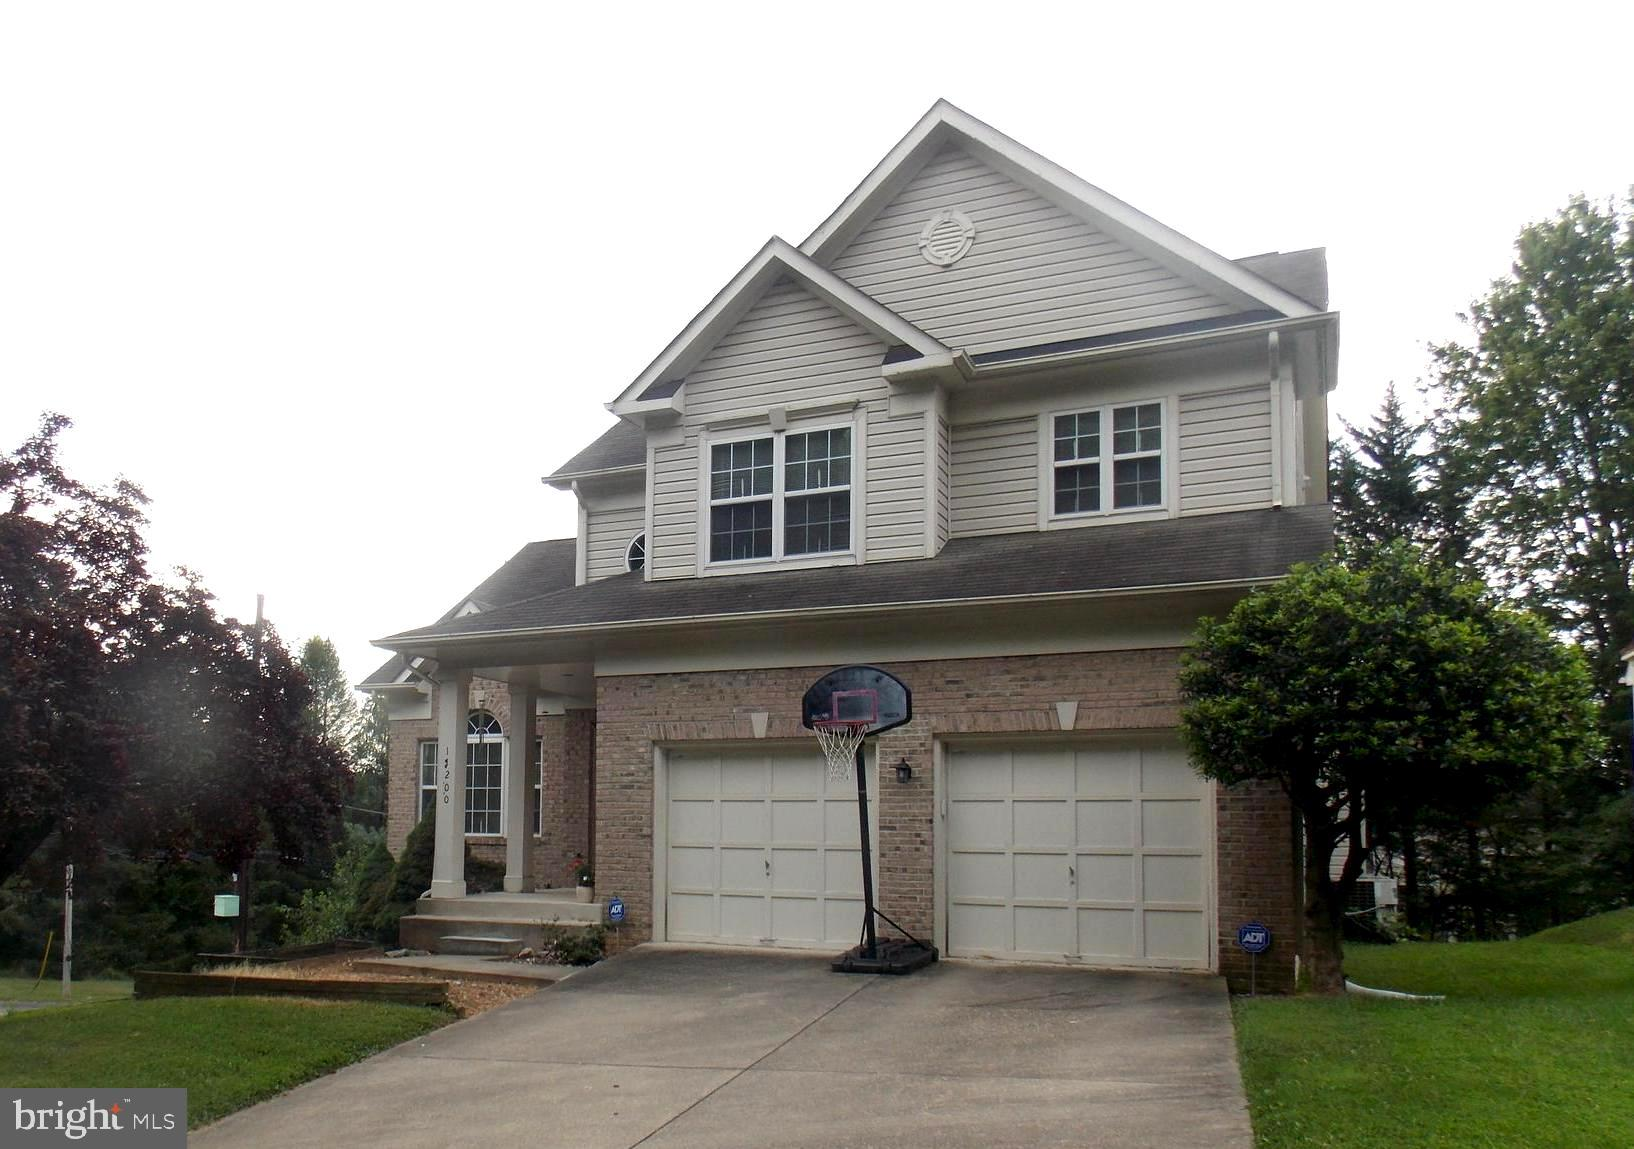 11200 KNOLLTOP VIEW COURT, GERMANTOWN, MD 20876